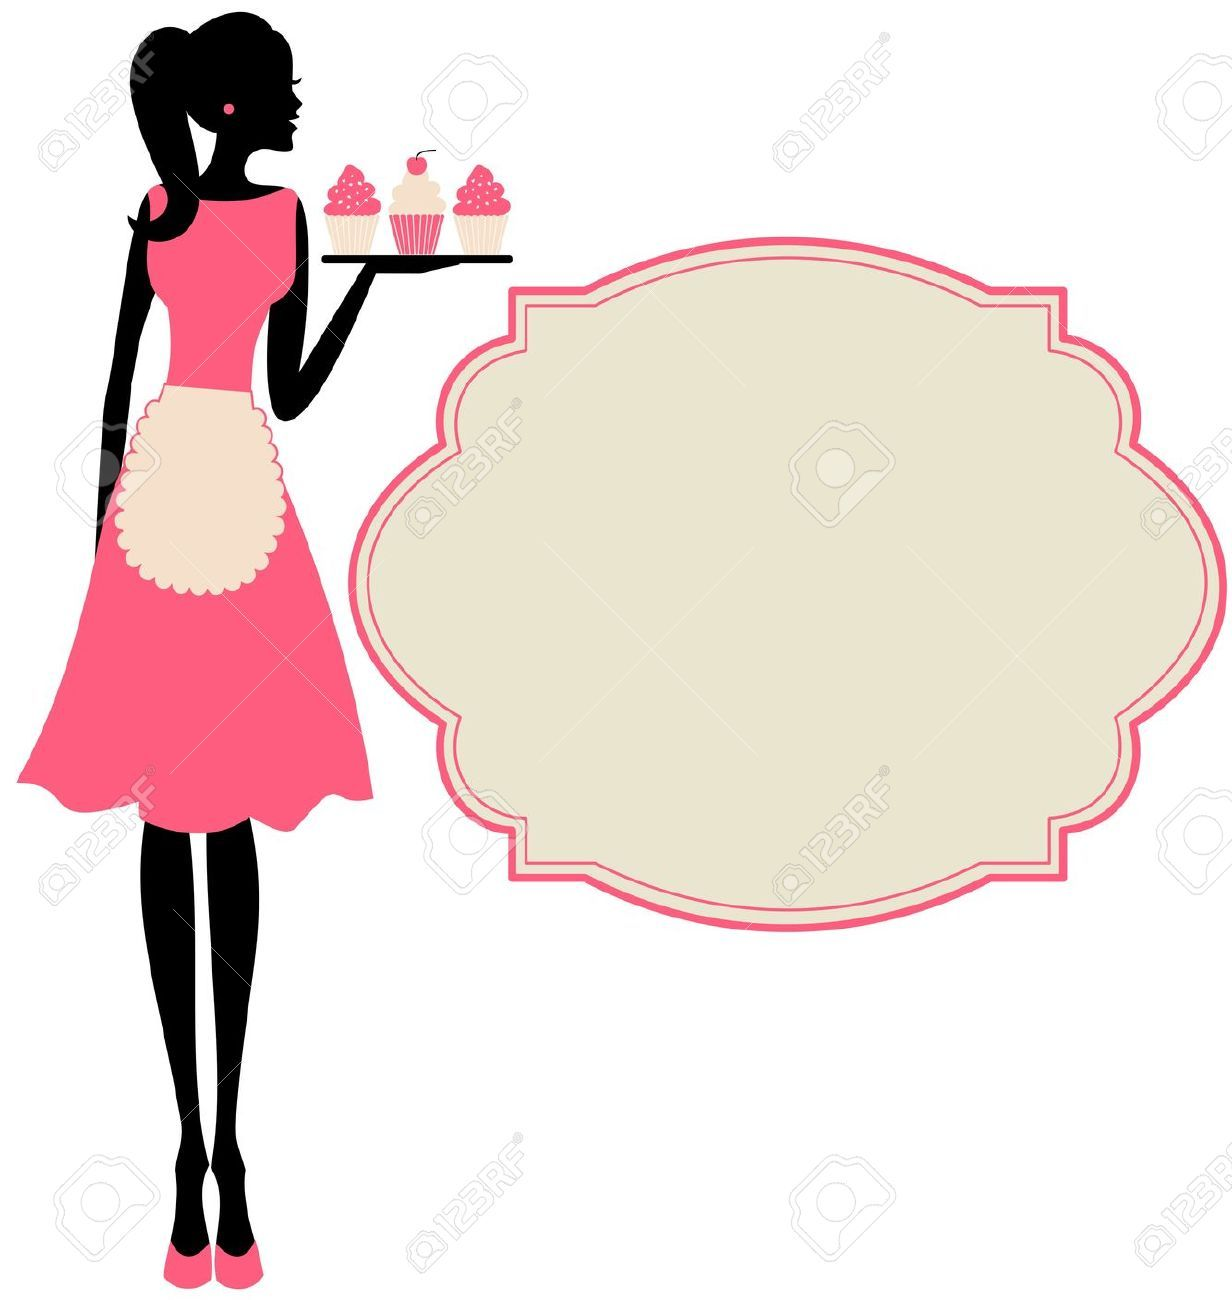 Woman Apron Cliparts, Stock Vector And Royalty Free Woman Apron.